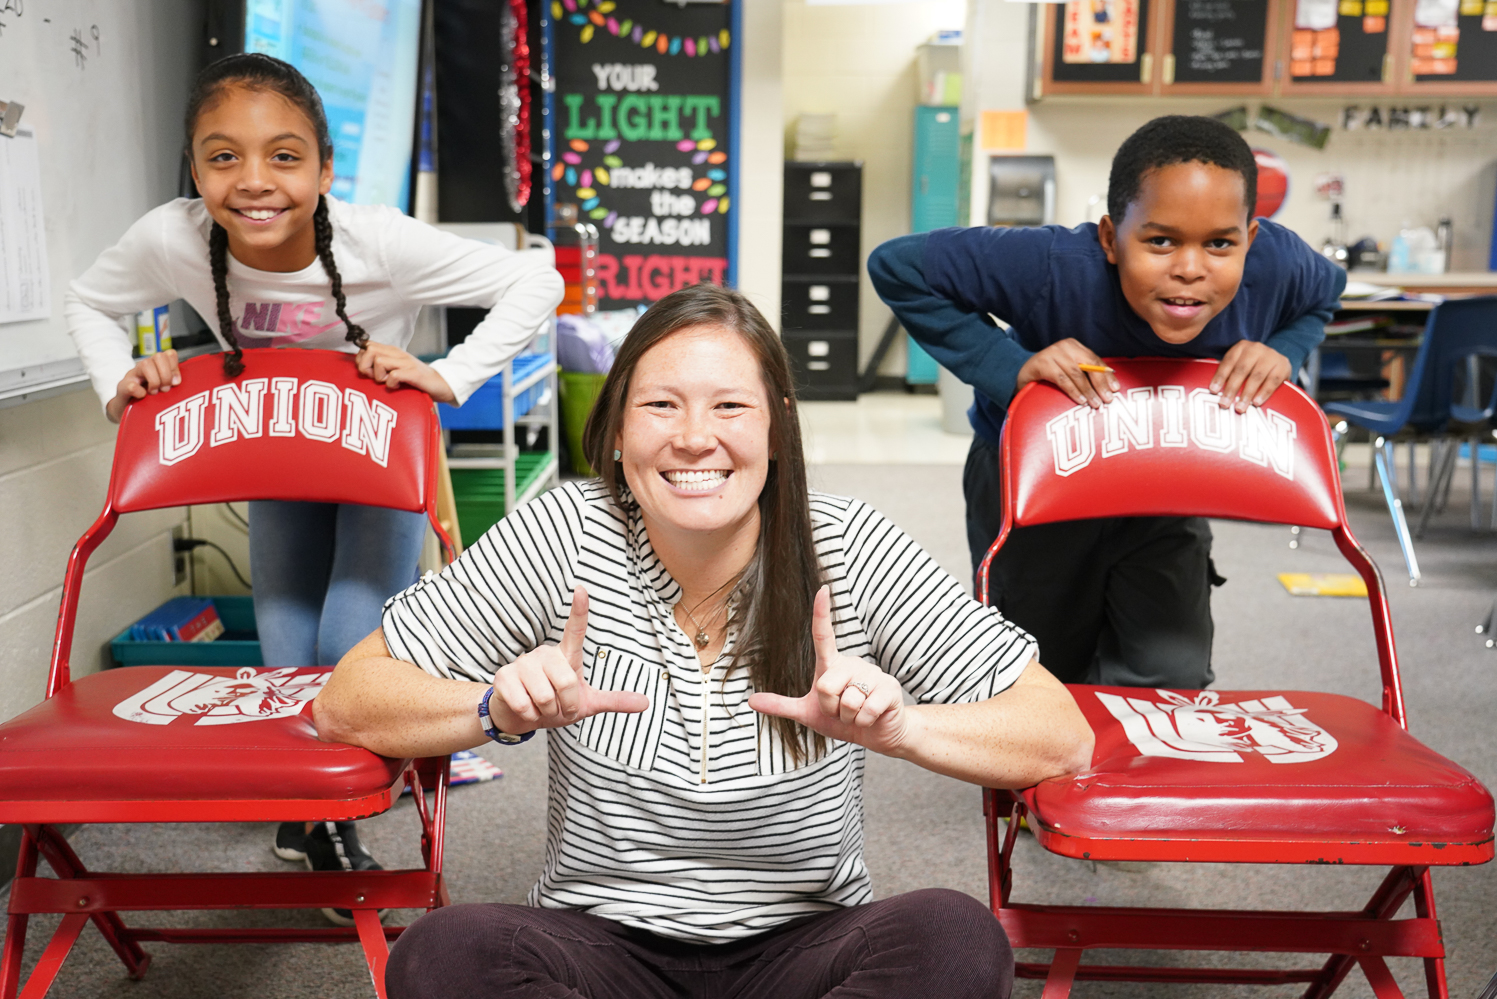 "Jarmey Dake, 4th Grade Fourth grade teacher Lacey Dake has been named the 2019-2020 Teacher of the Year for Jarman Elementary School. Dake started teaching at Union Public Schools in 2010 at what used to be the Union Intermediate High School. Furthermore, she said, ""I am a Union Lifer! I went to Grove Elementary and graduated in 2006.  I graduated from Missouri State University in 2010 with my bachelor's of science in elementary education. I am also certified in early childhood Education. Dake said, ""I became a teacher to make a difference in children's lives – to know they have someone in their corner rooting them on through life.  I love working with kids.  I hope to inspire them and spark a love for learning just as my past educators did for me."" Her favorite subject to teacher is math. ""I love that math is universal!  I enjoy using manipulatives and playing games to help students grasp the many mathematical concepts in fourth grade.""  One could say that Dake's love for students and Union just adds up!"